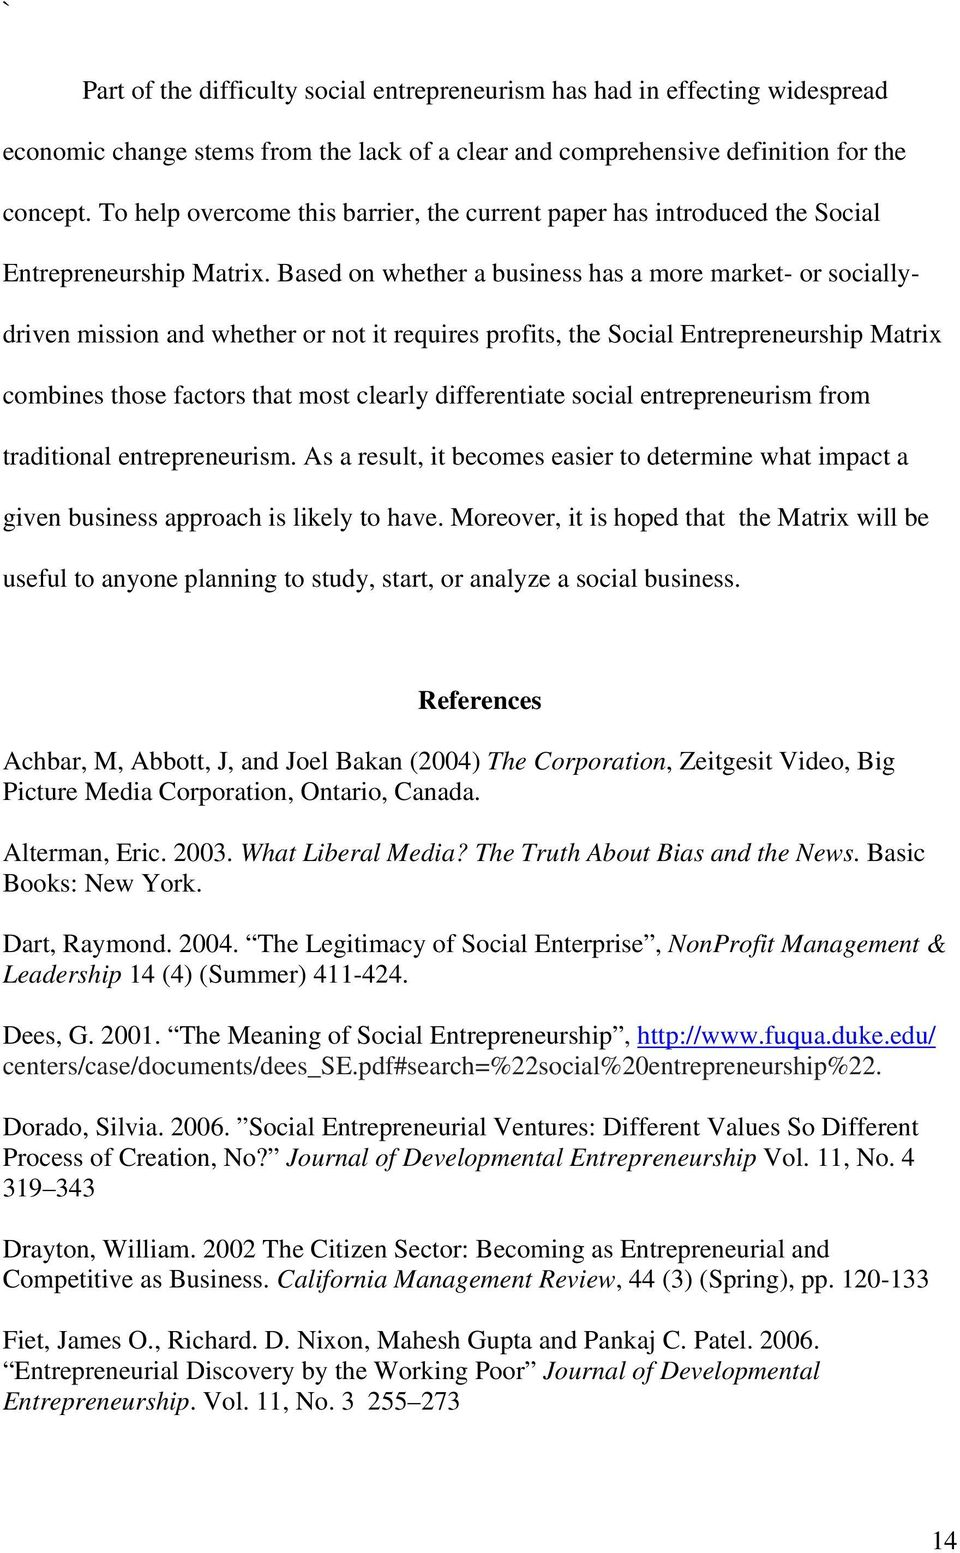 Based on whether a business has a more market- or sociallydriven mission and whether or not it requires profits, the Social Entrepreneurship Matrix combines those factors that most clearly